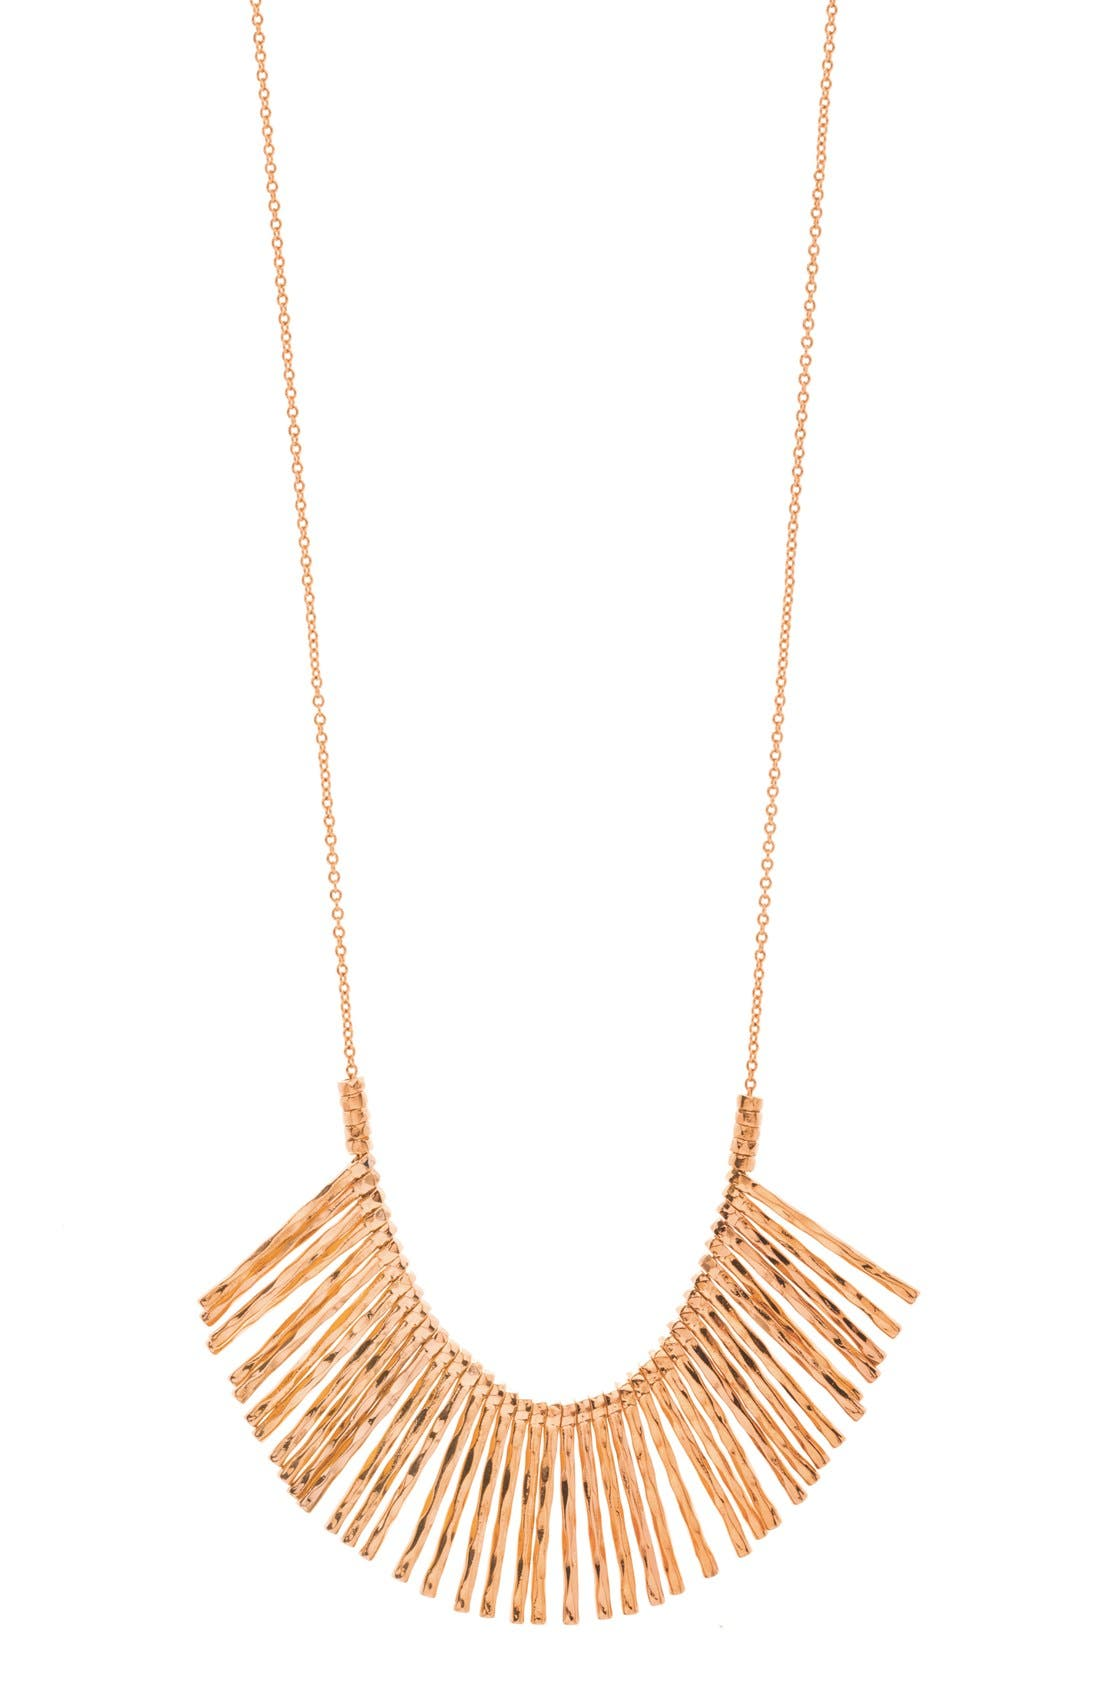 Gorjana Kylie Fan Necklace, Silver